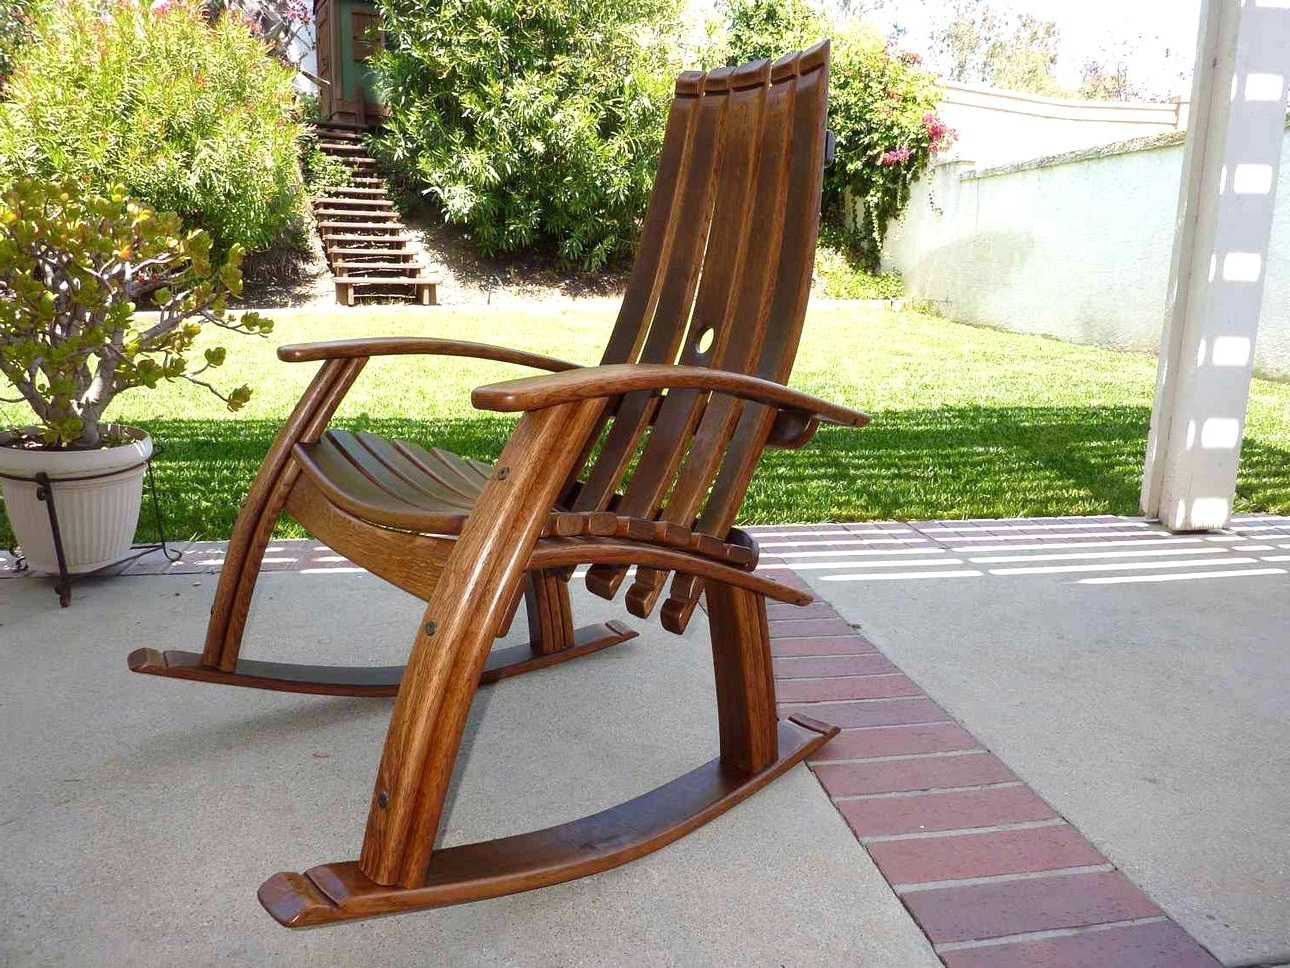 Preferred Rocking Chair Outdoor Wooden Intended For Outdoor Wooden Rocking Chairs Design – Home Interior And Furniture (View 16 of 20)